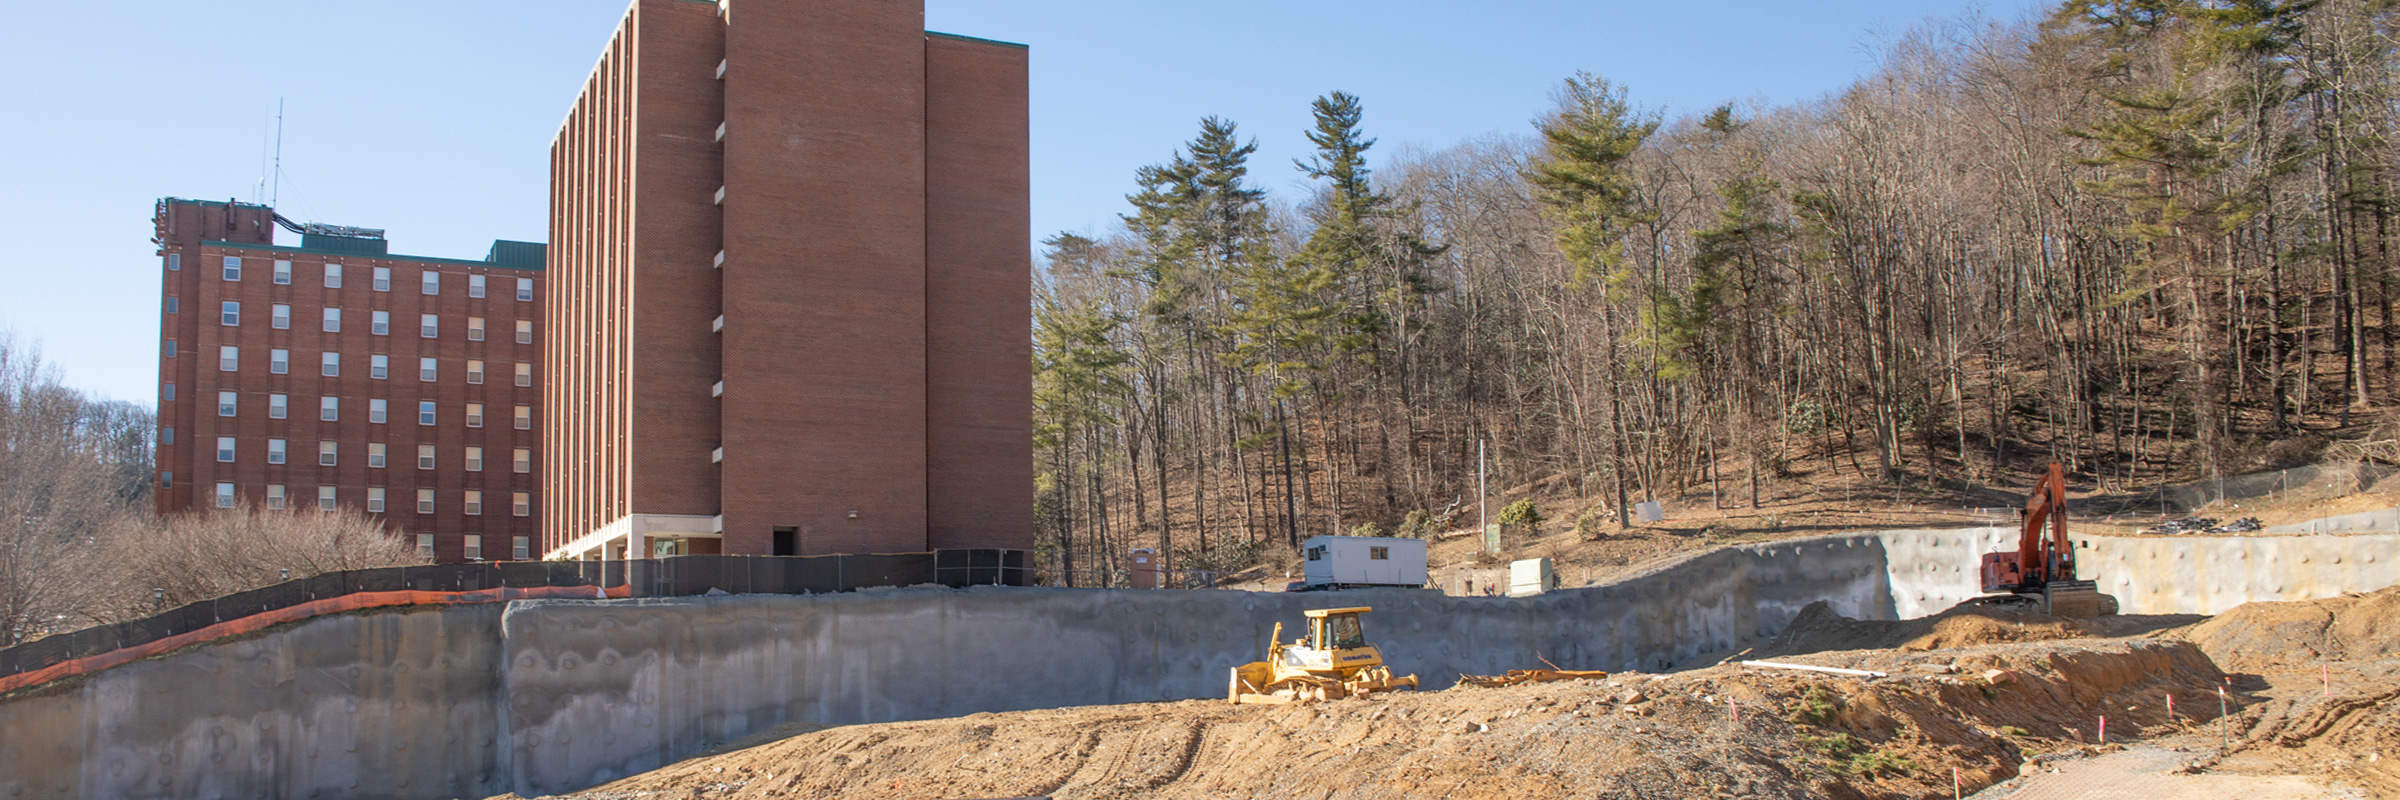 Construction on west side of campus